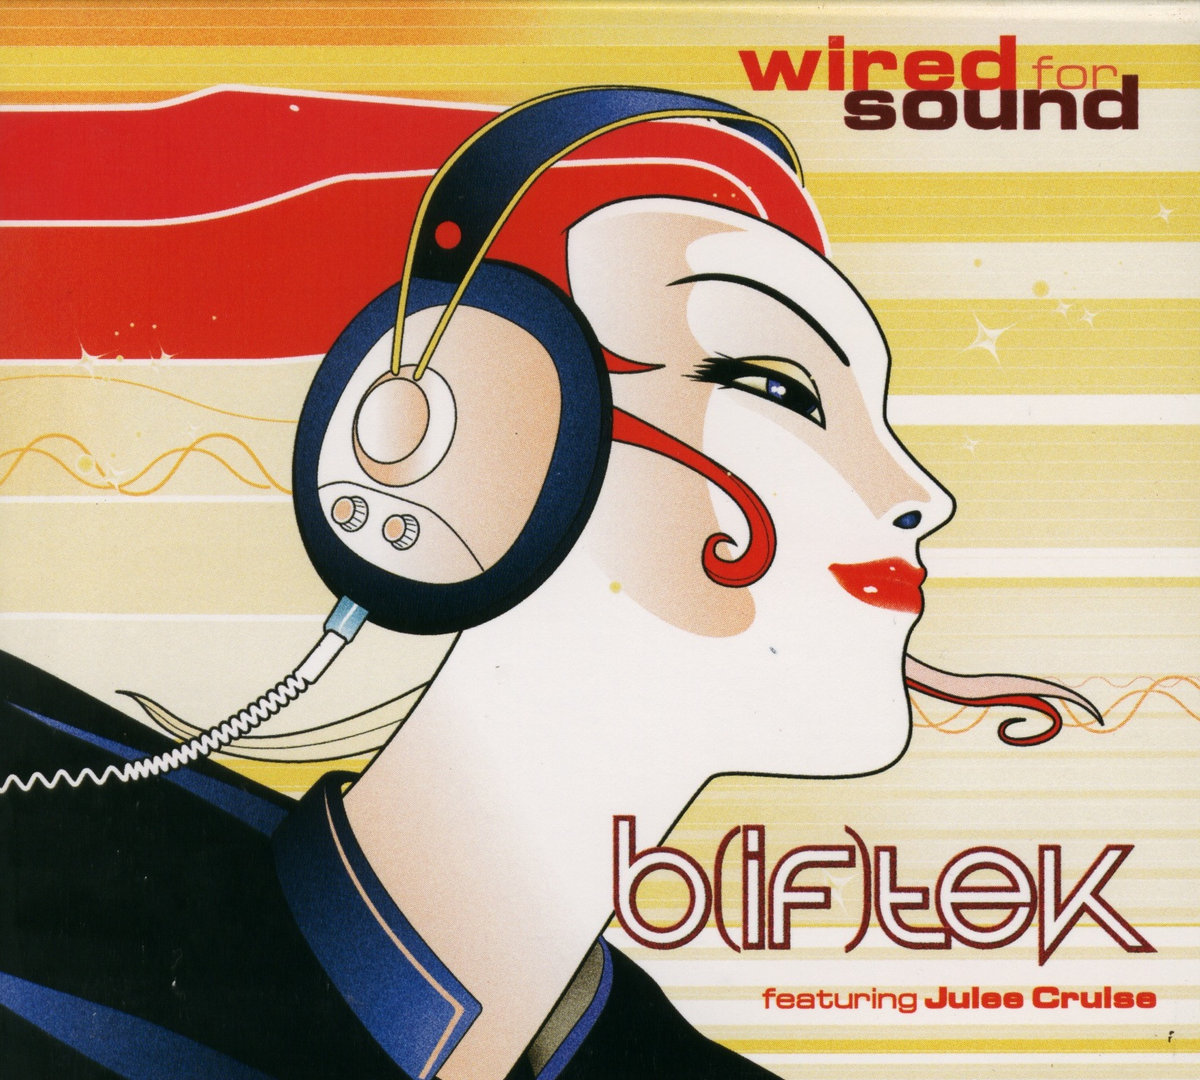 Wired for Sound | B(if)tek